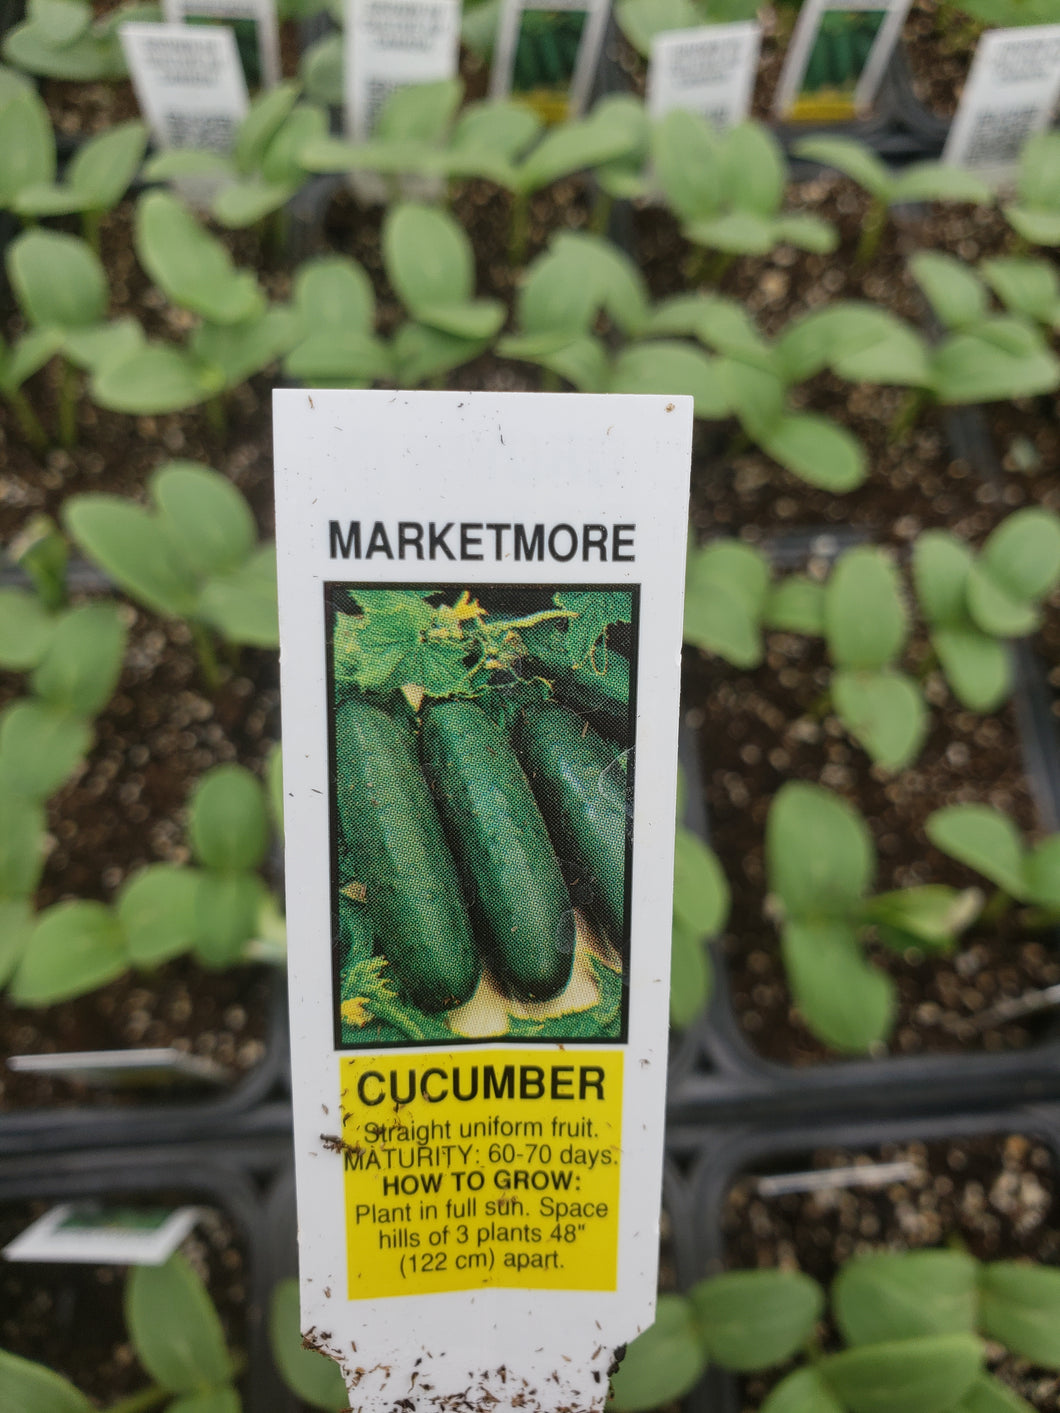 Cucumbers - Marketmore